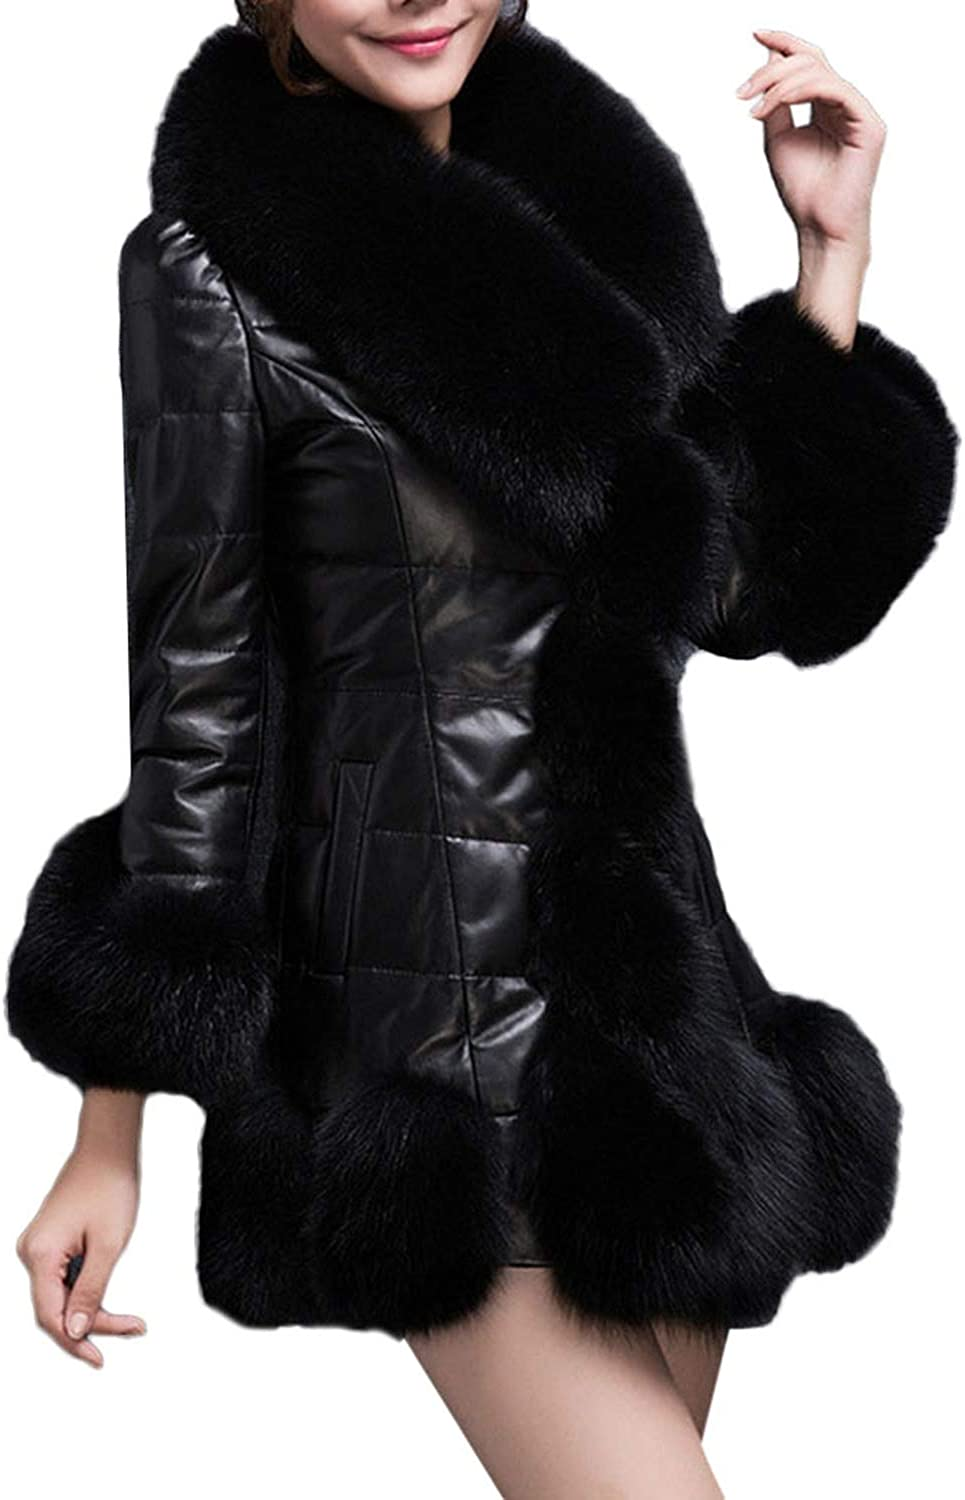 1PC Coat Women Winter Coat Faux Fur Coat Elegant Warm Long Sleeve Splice Long Fake Fur Down Jacket,PP,XXL